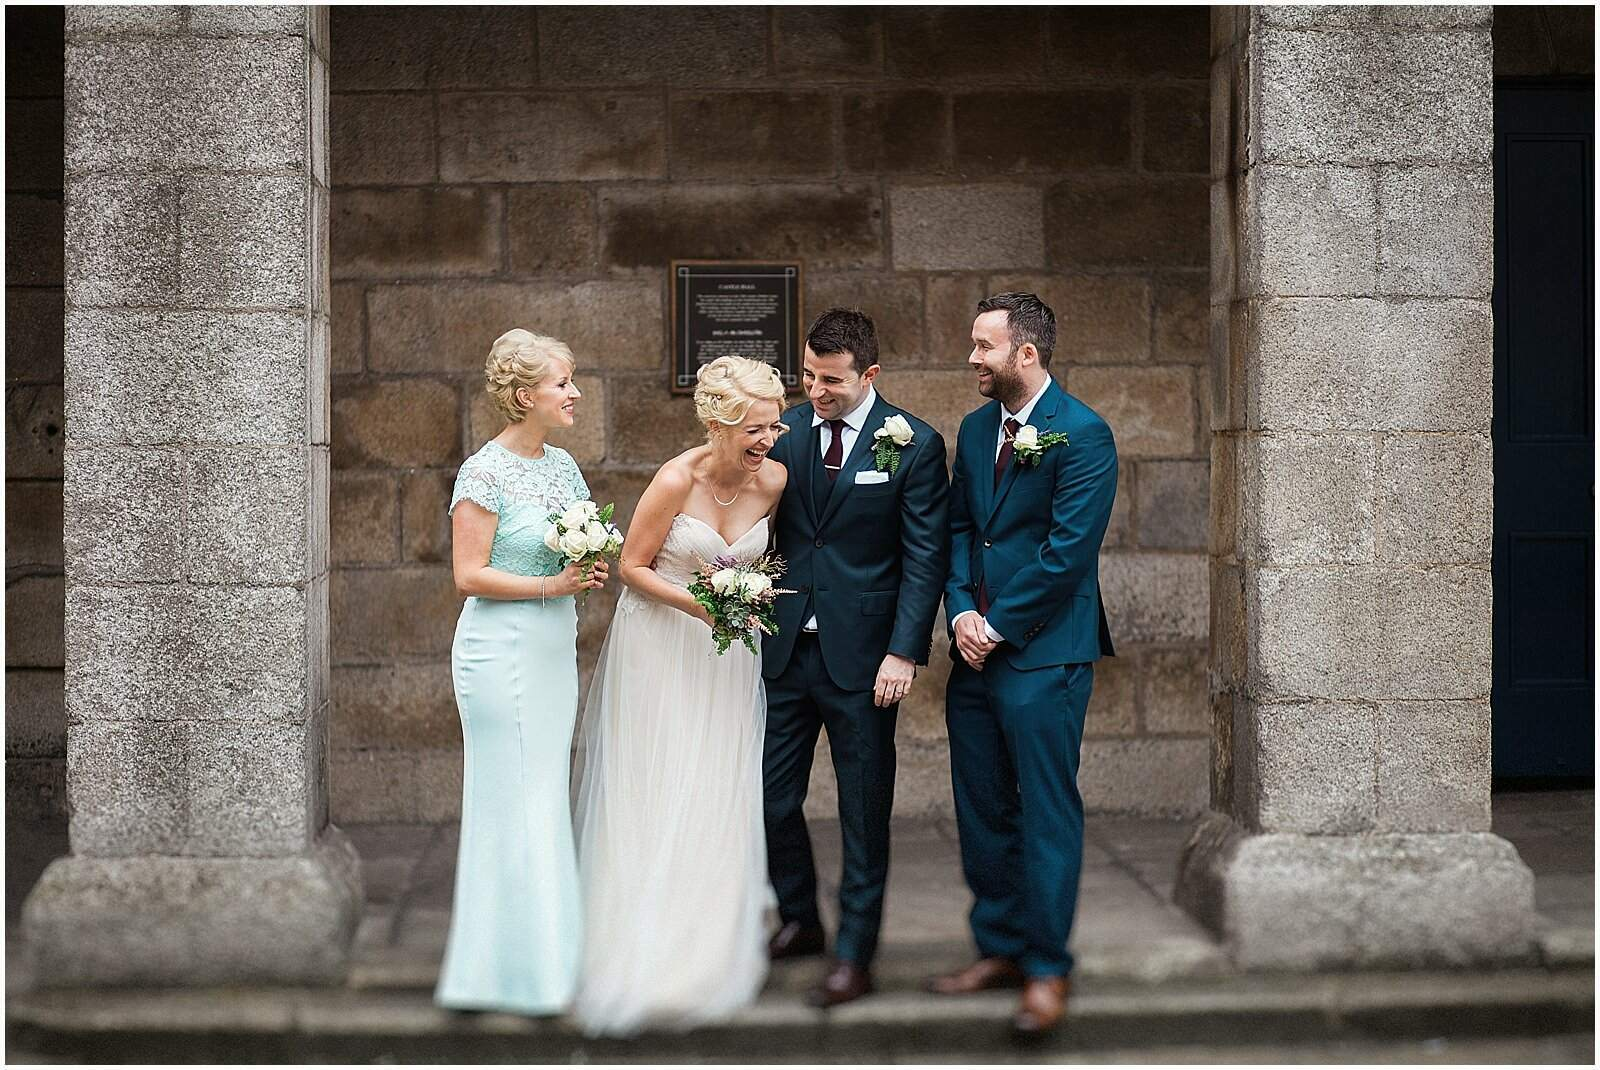 Johnny Corcoran Lifestyle Relaxed Unposed documentary Natural Wedding Portrait Photography Dublin Ireland 2241 - Fun and Relaxed wedding and elopement photography in Ireland, perfect for adventurous and outdoorsy couples